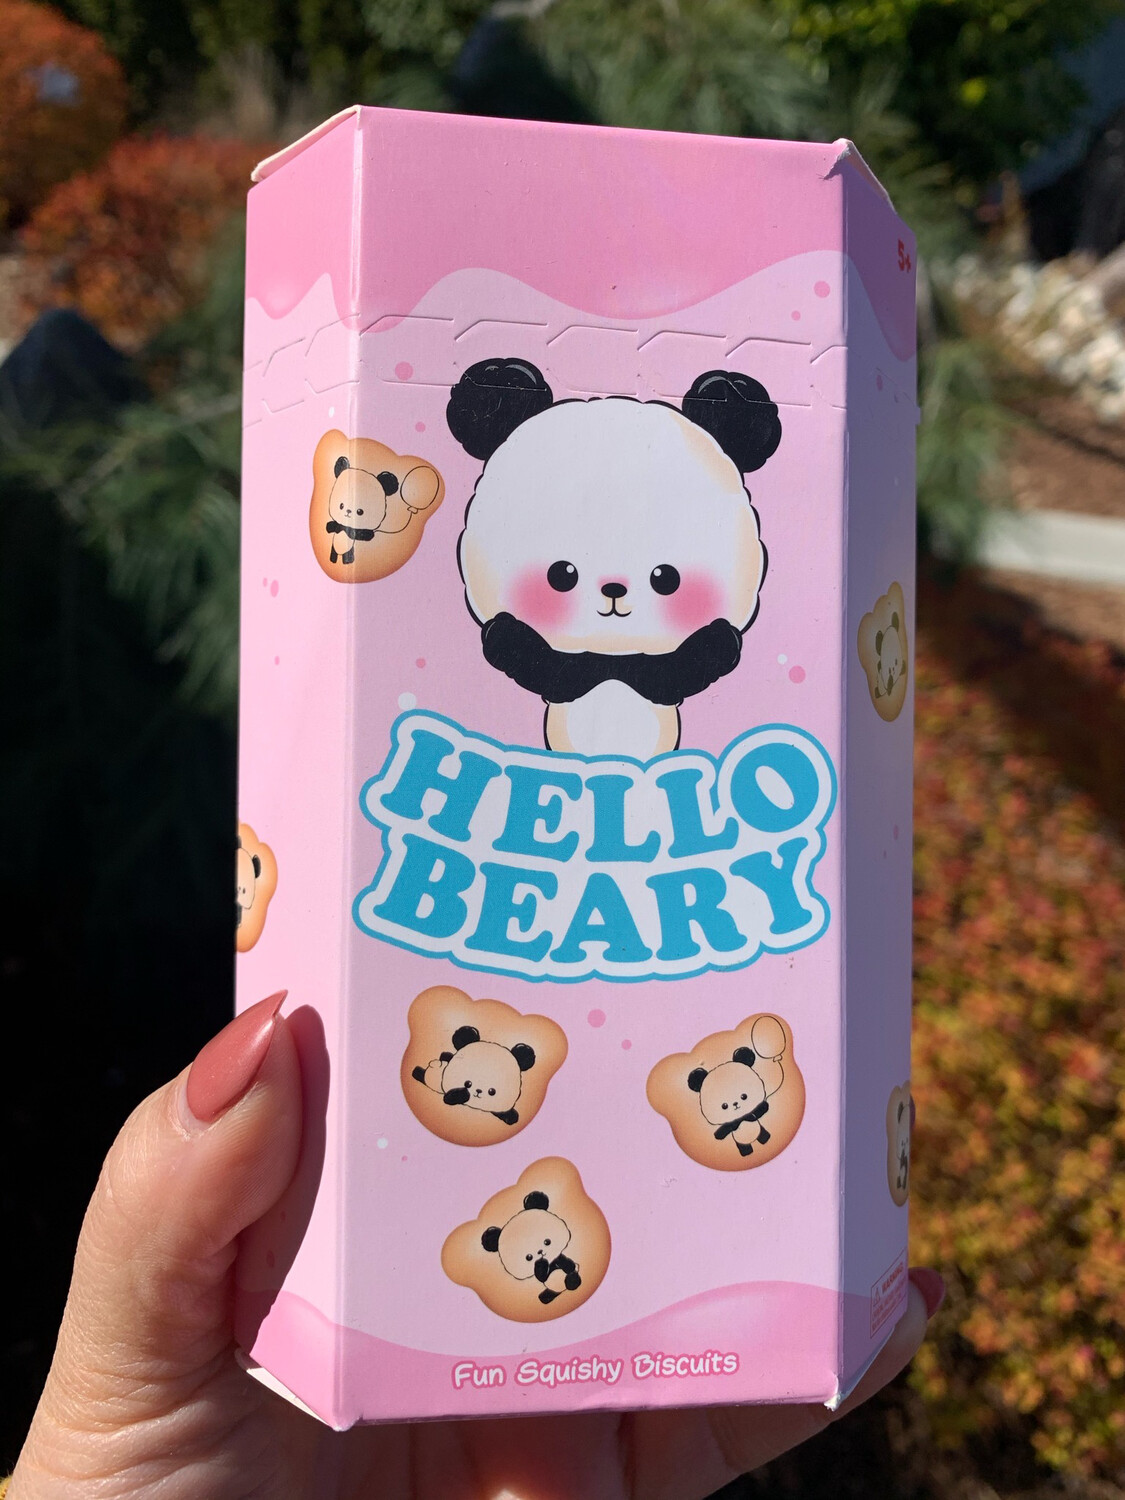 Silly Squishies Hello Beary Squishy Toy